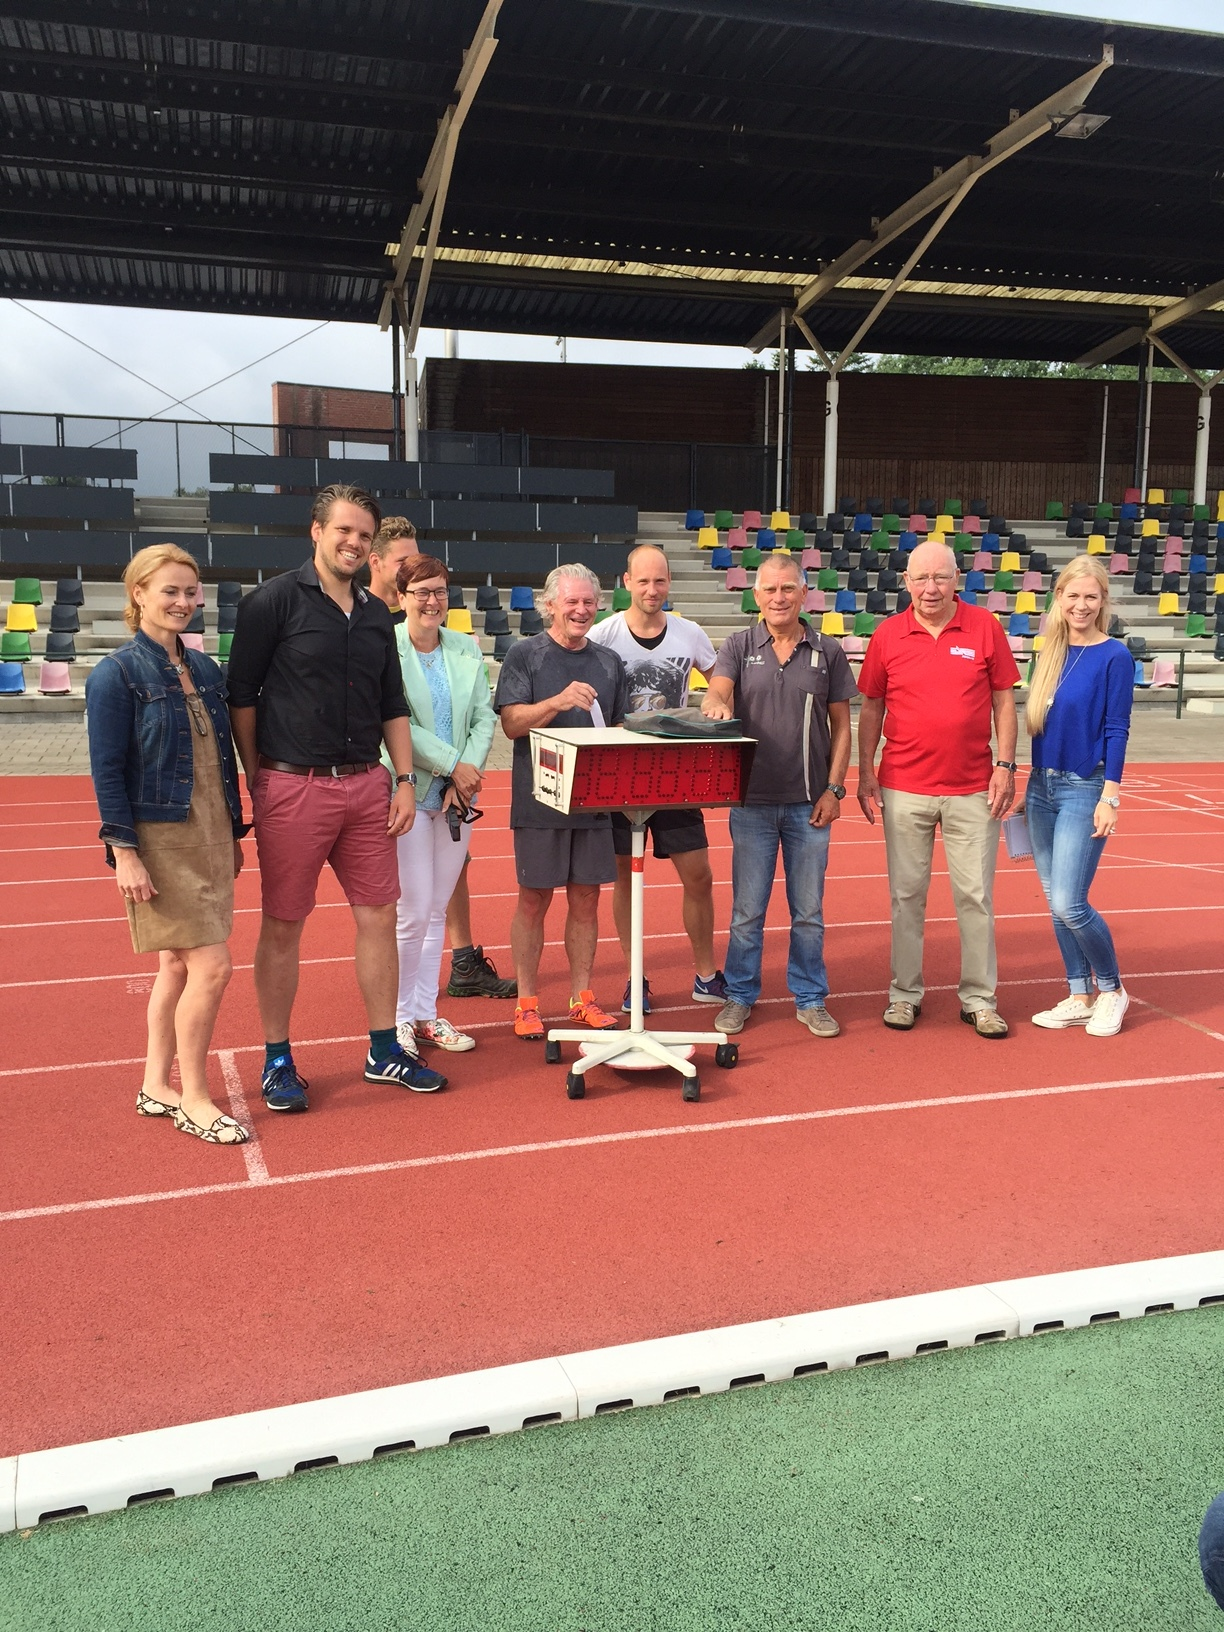 The Gang from the Fanny Blankers-Koen Stadion after the 5000m